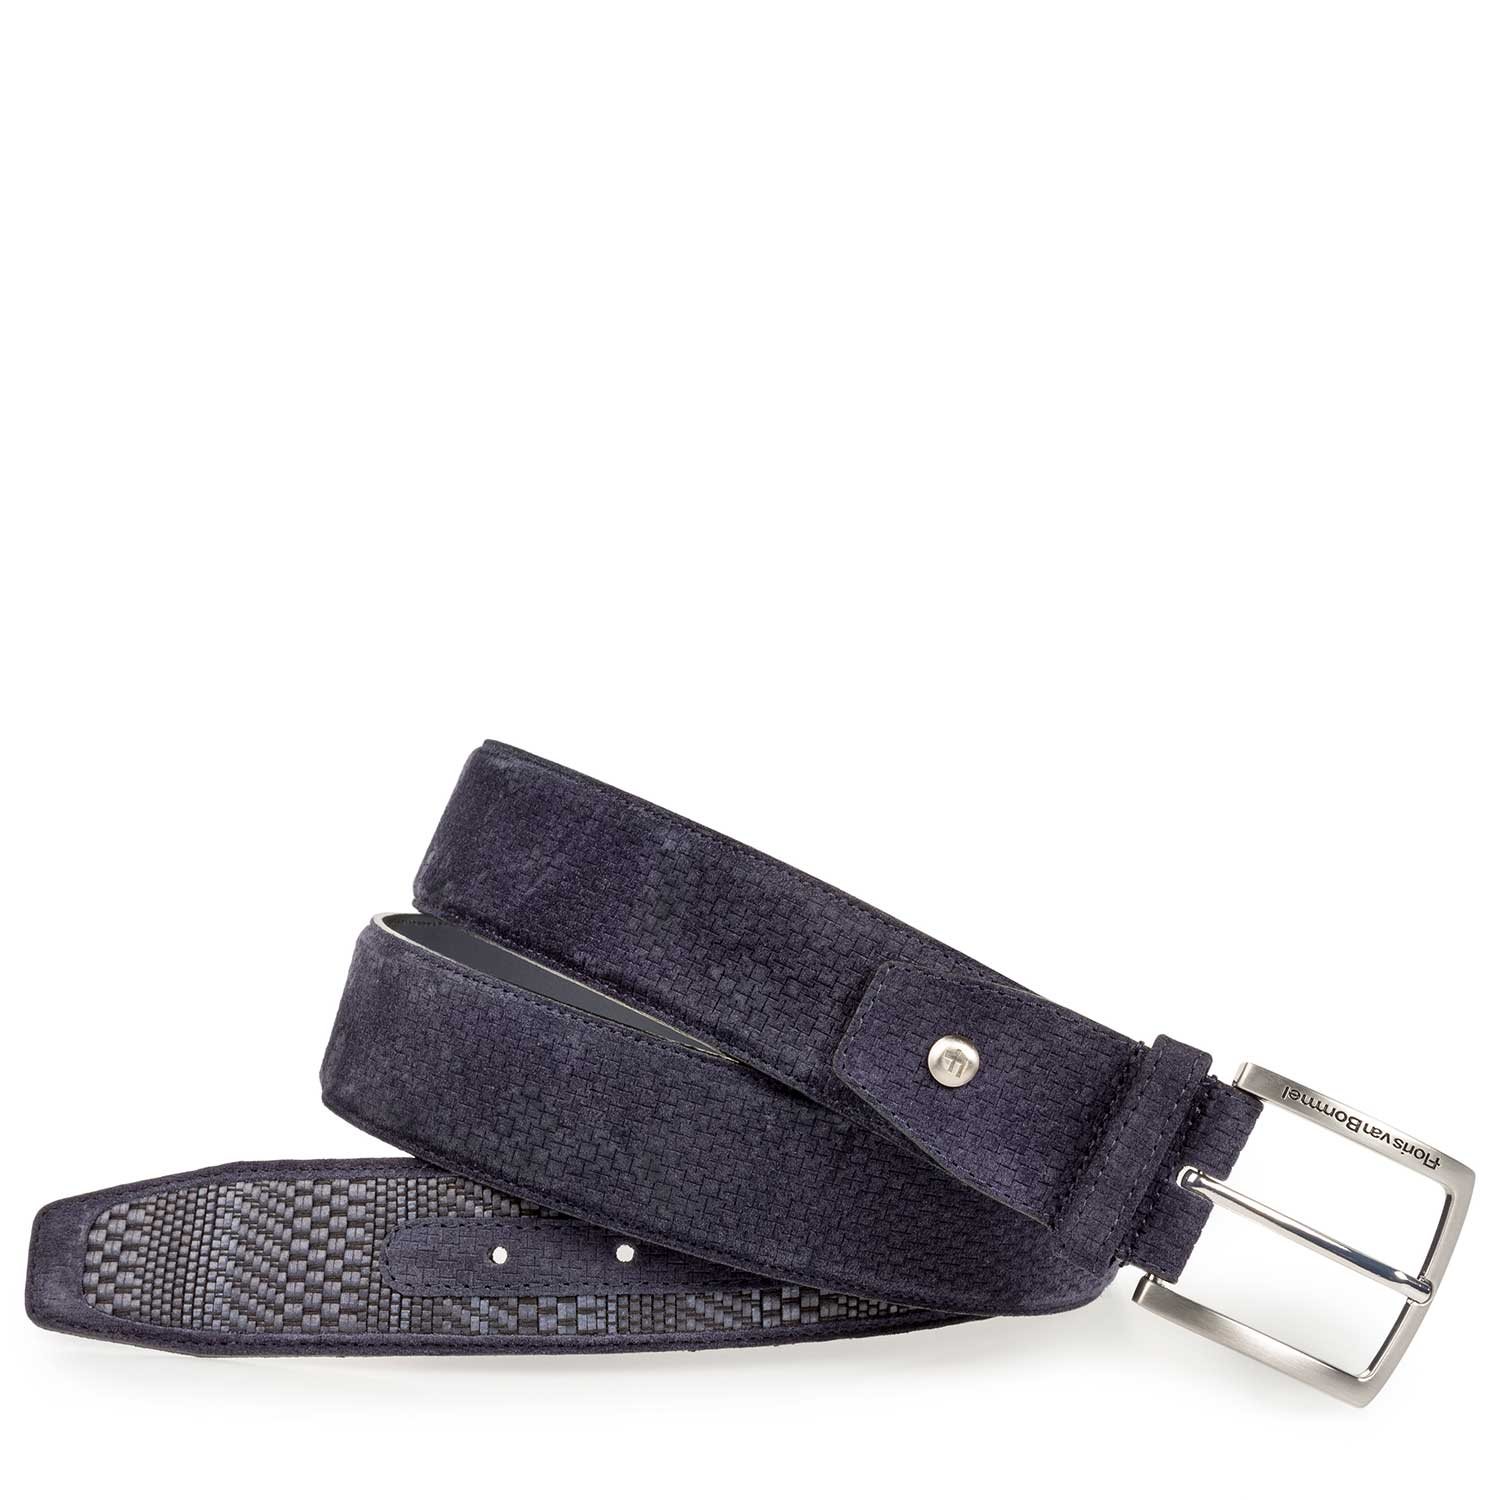 75159/16 - Dark blue belt with a braided pattern